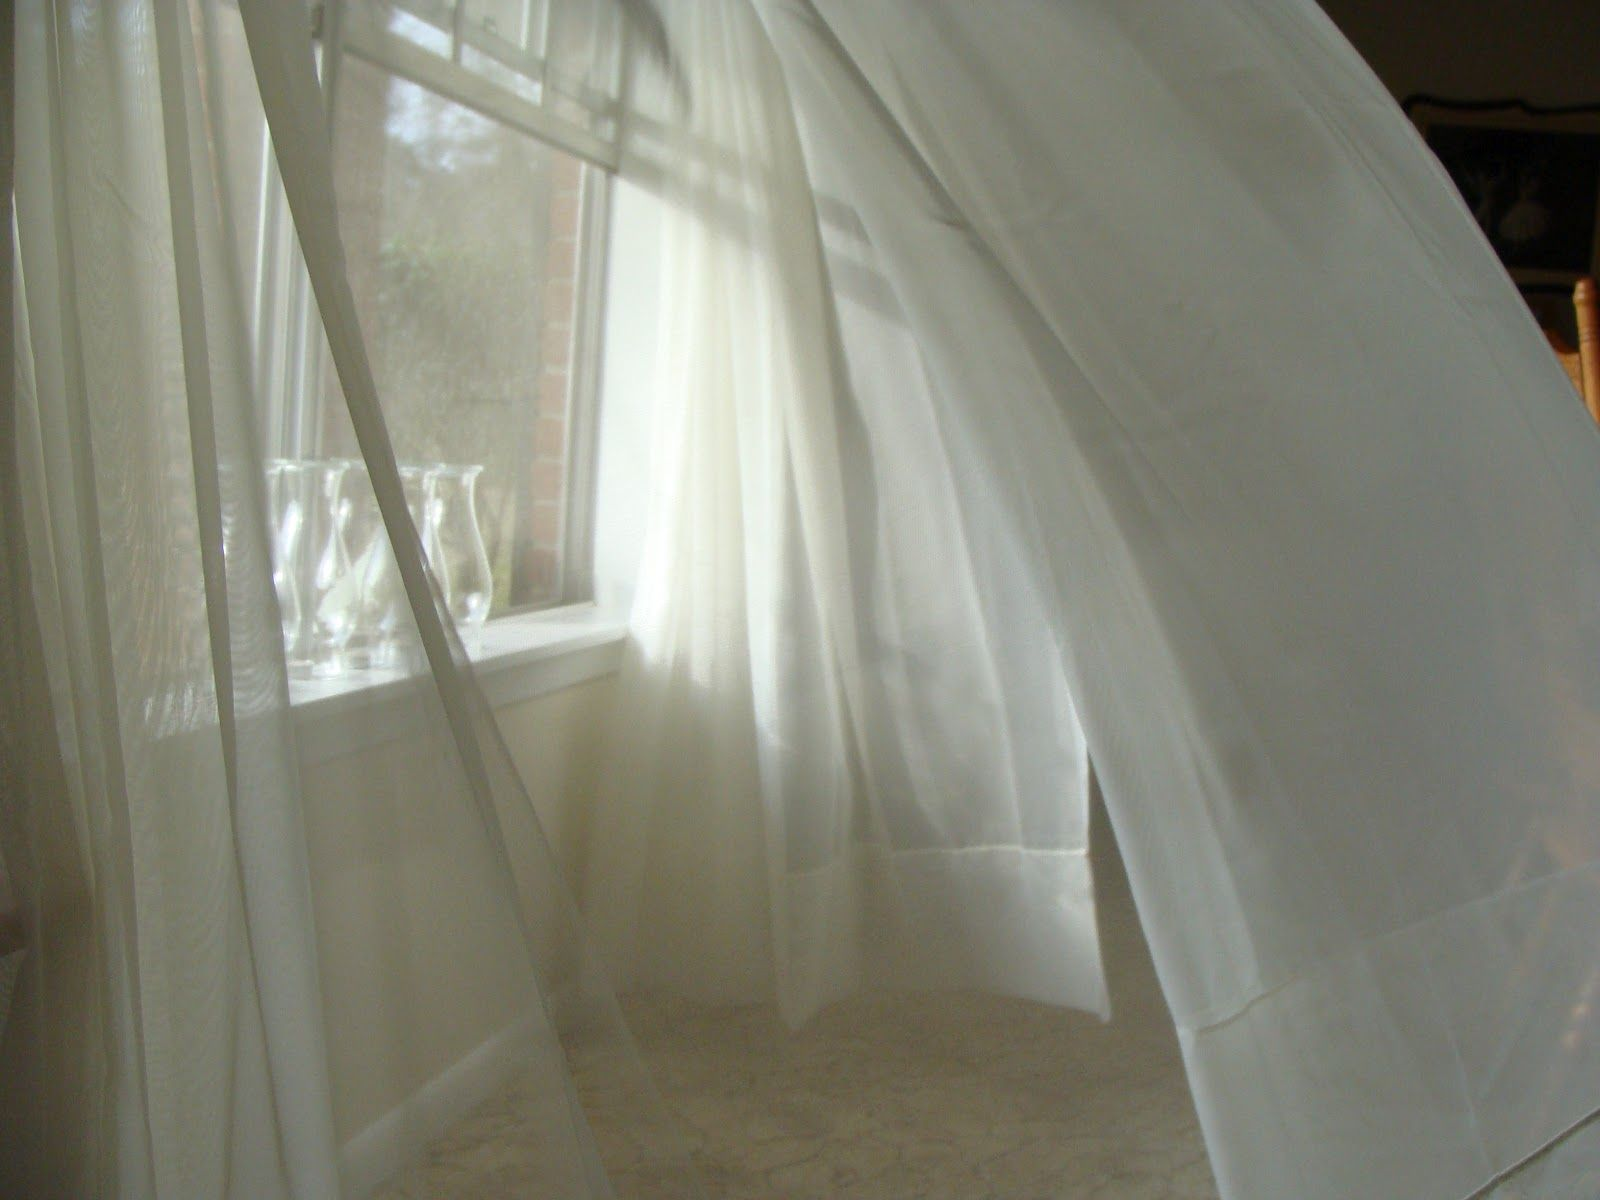 Wind Blowing curtains | The Tomorrow Trunk | Air | Pinterest ... for Window With Curtains Blowing  303mzq